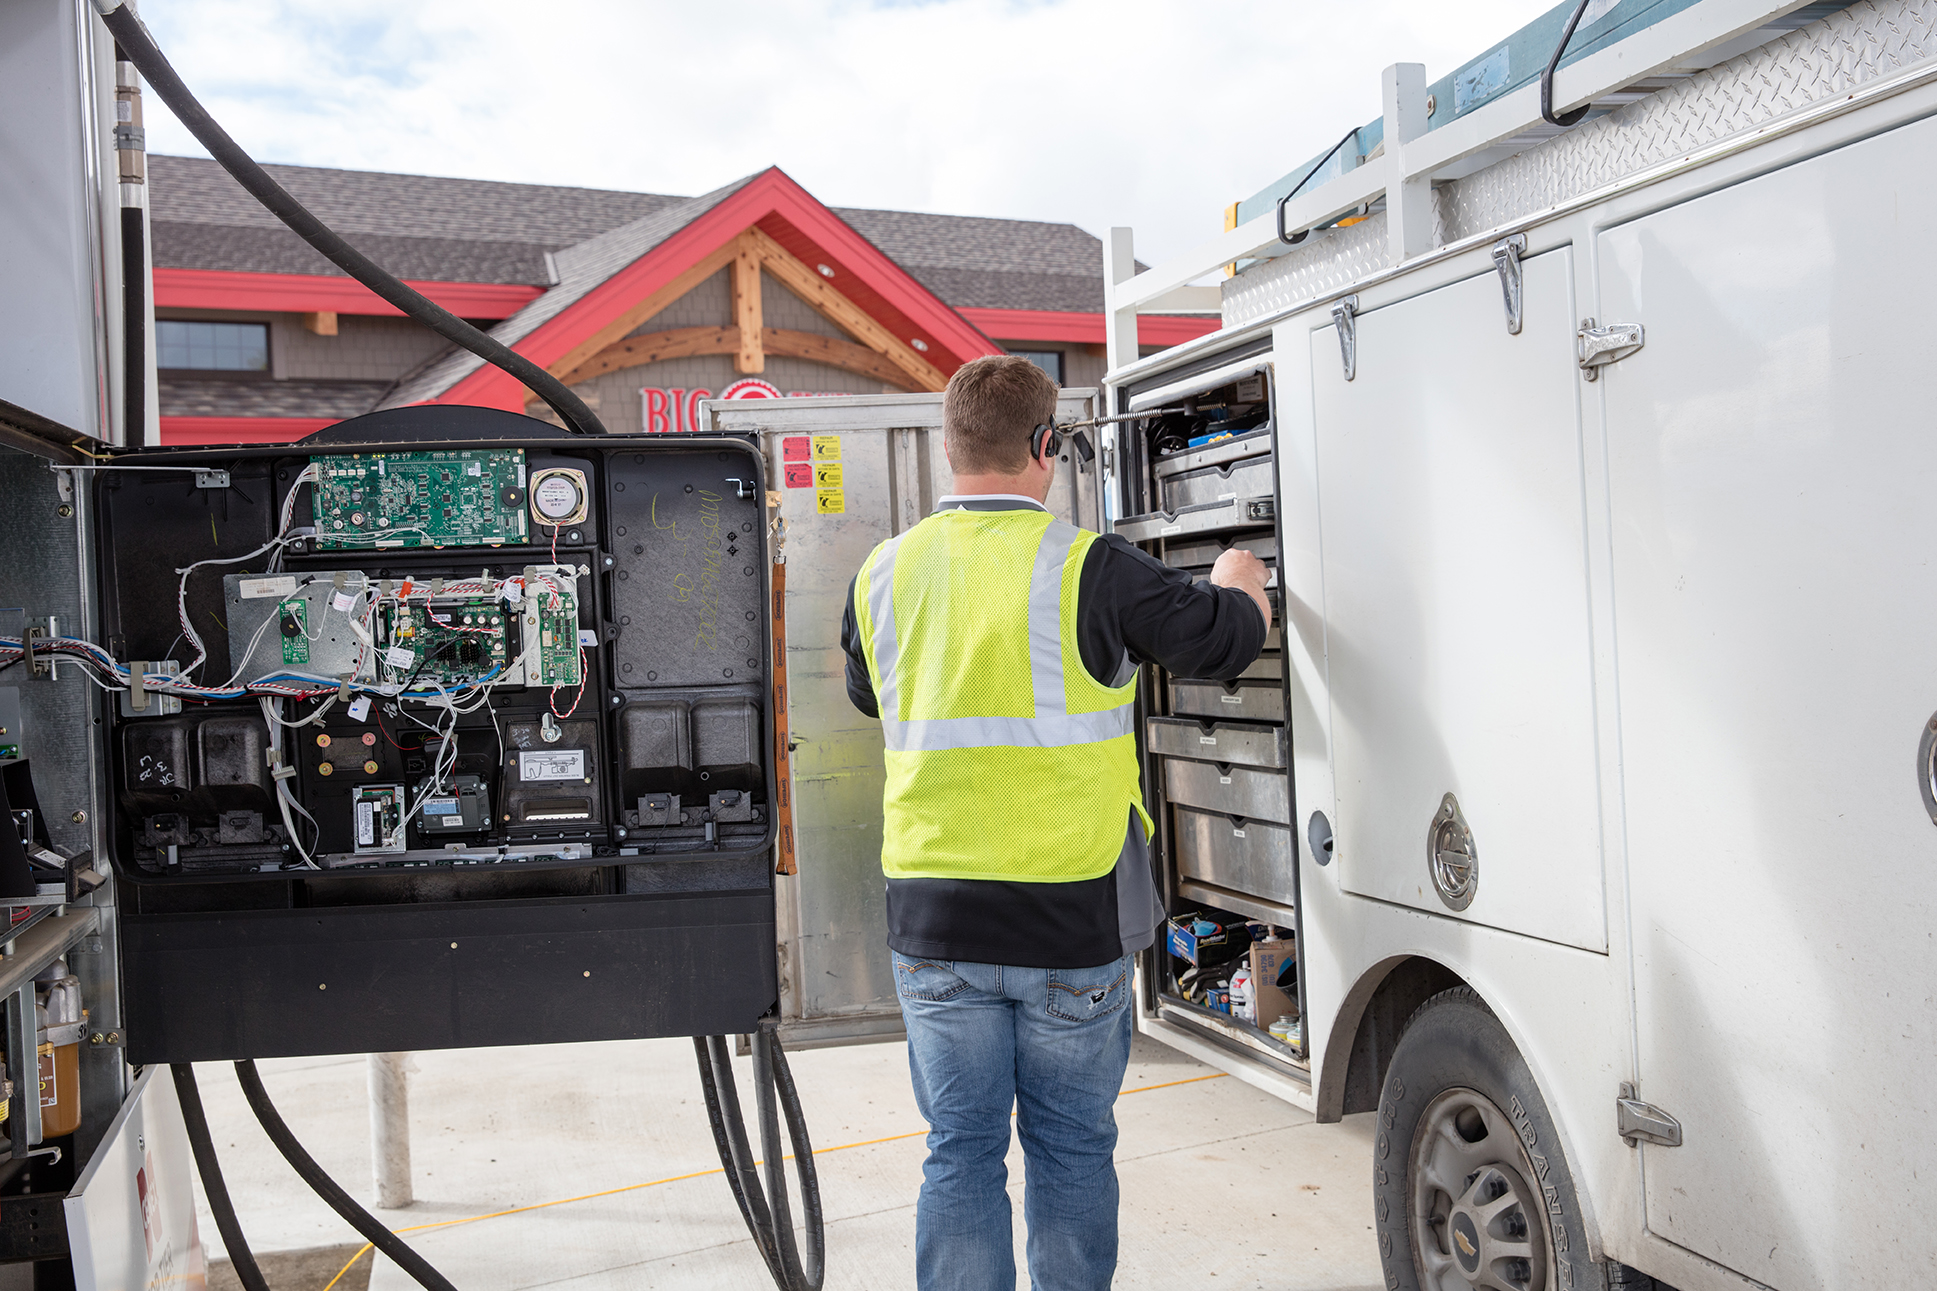 Westmor service technician fixing fuel dispenser at c-store.